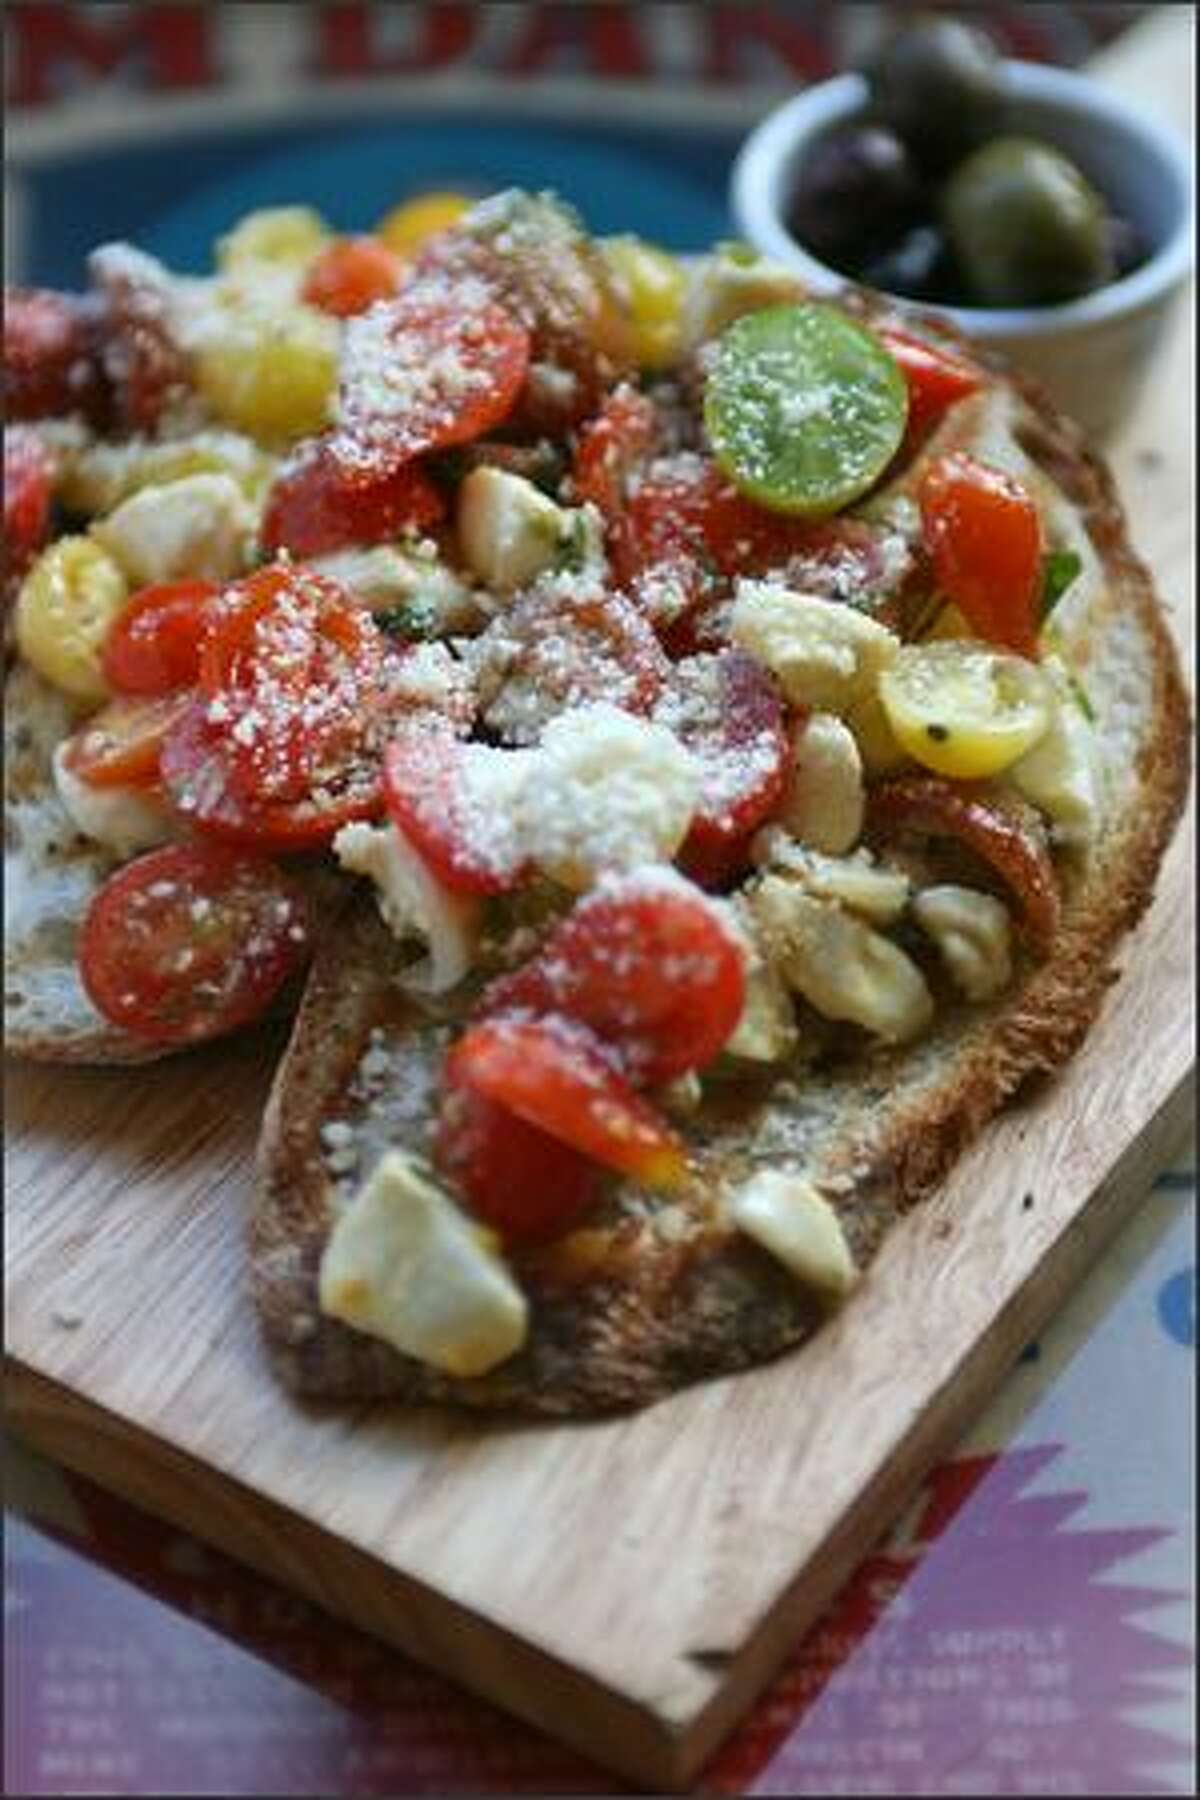 Generous portions of grilled bruschetta are piled with grape tomatoes, sweet onion and creamy dabs of mozzarella.